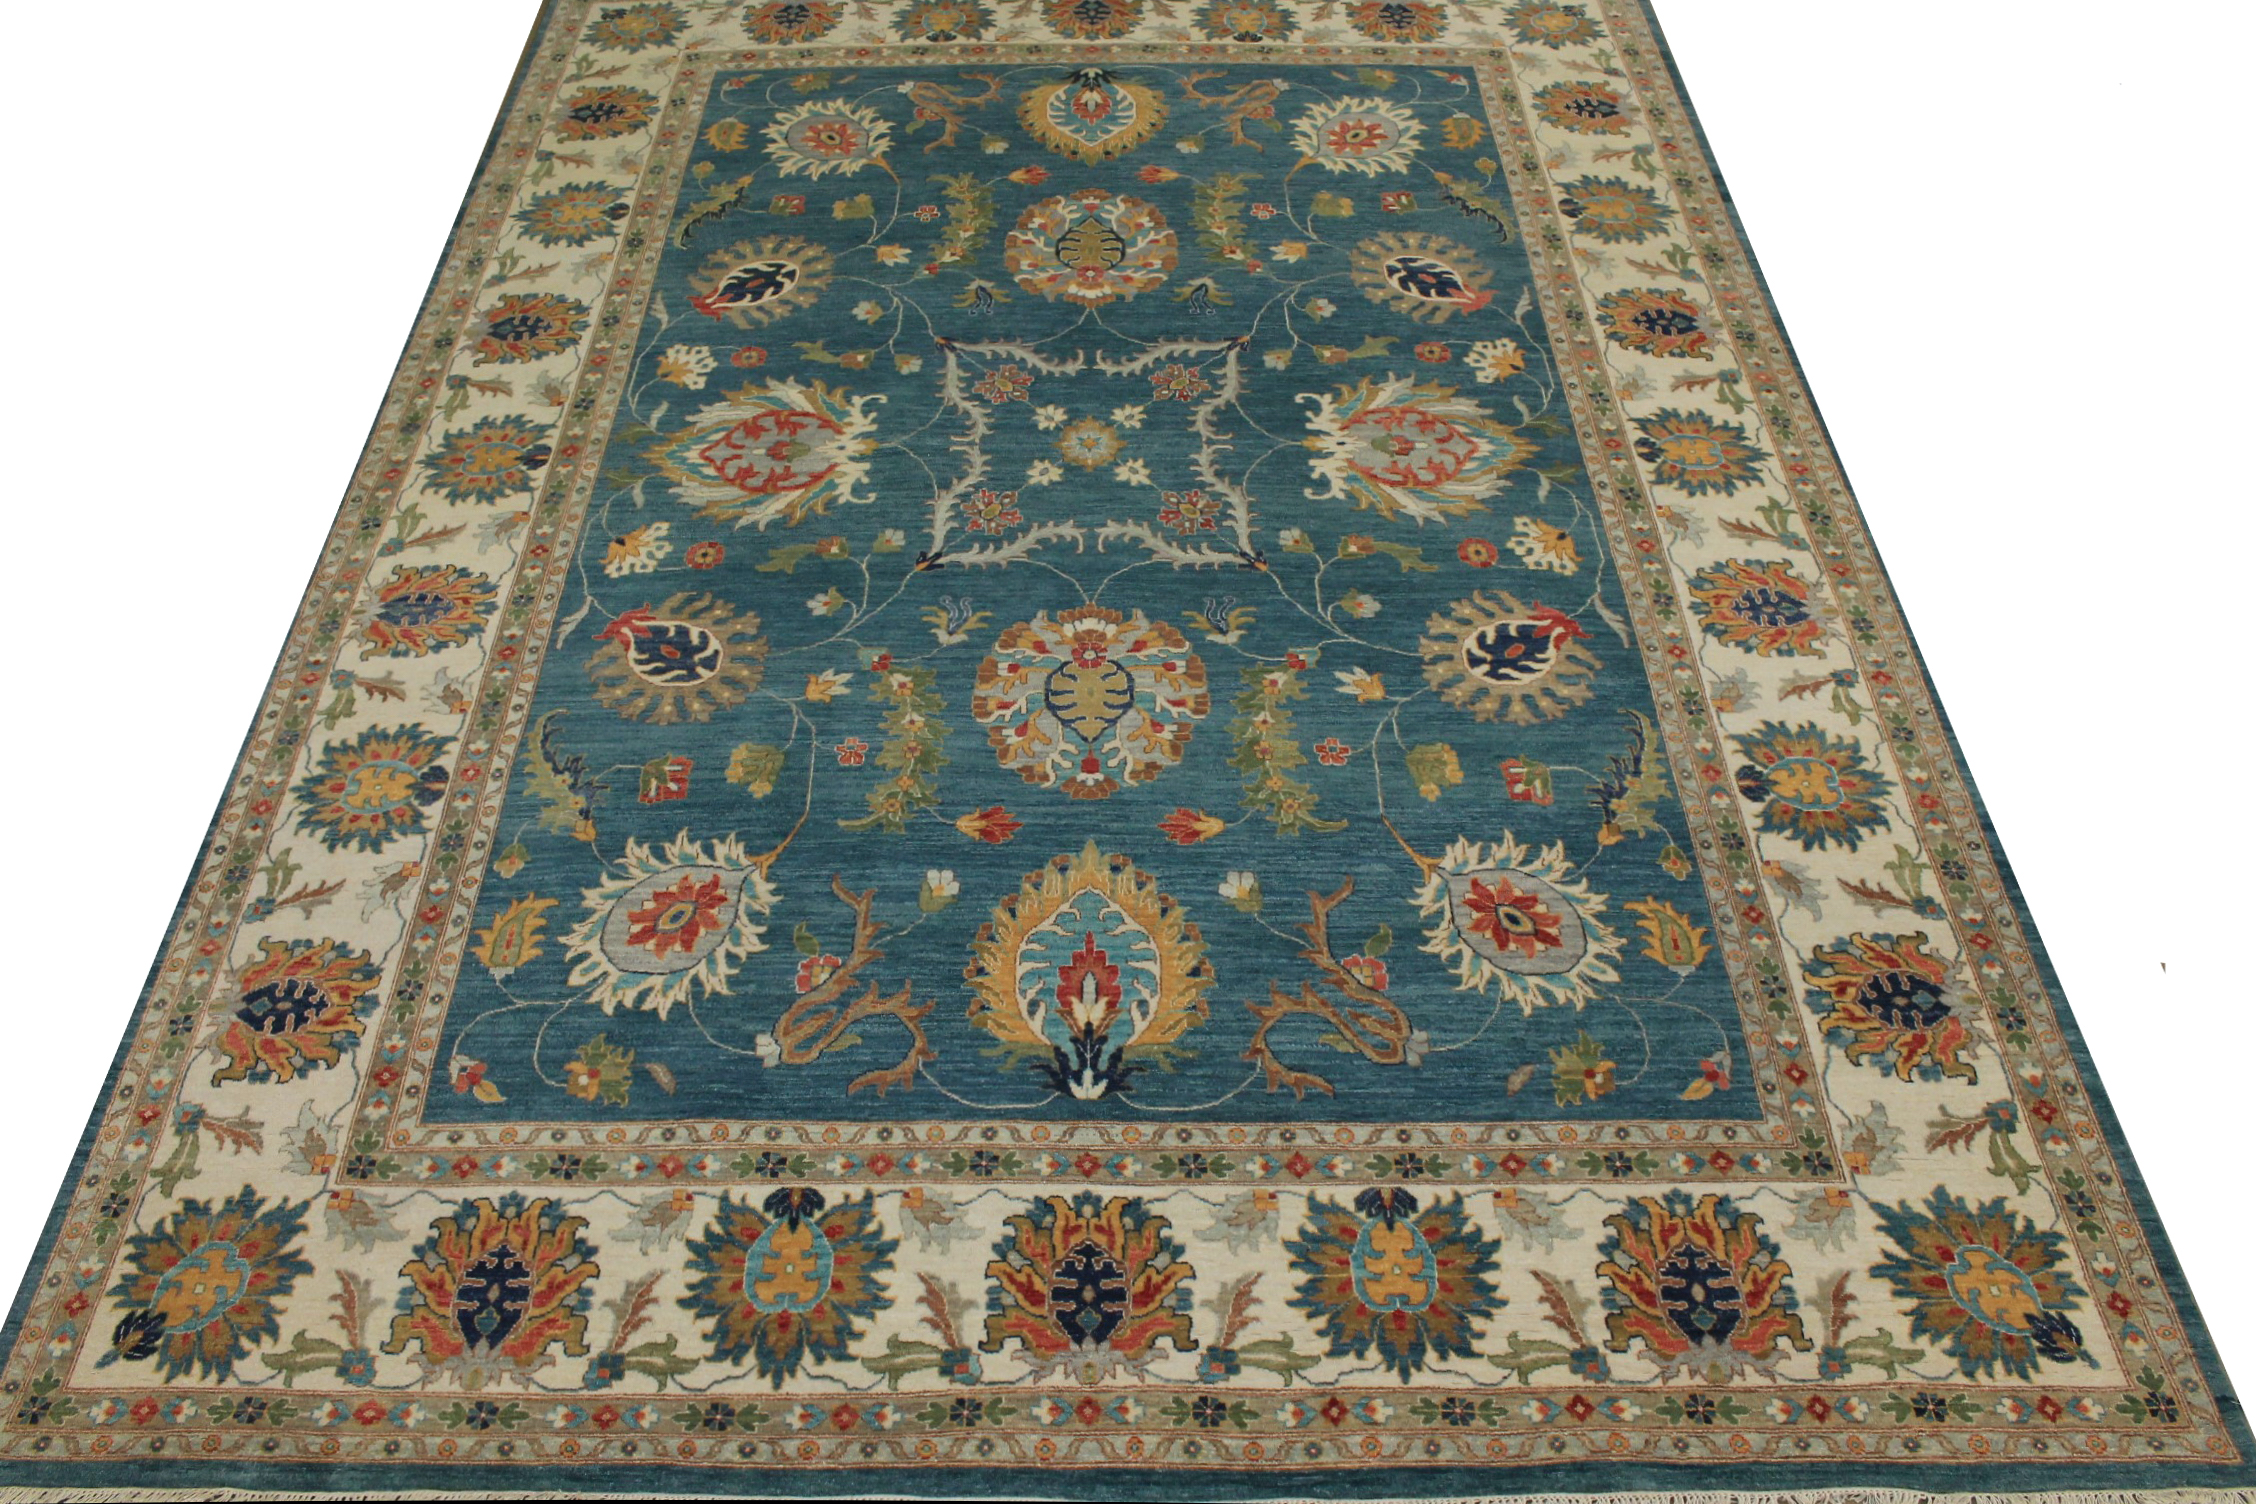 10x14 Traditional Hand Knotted Wool Area Rug - MR024057